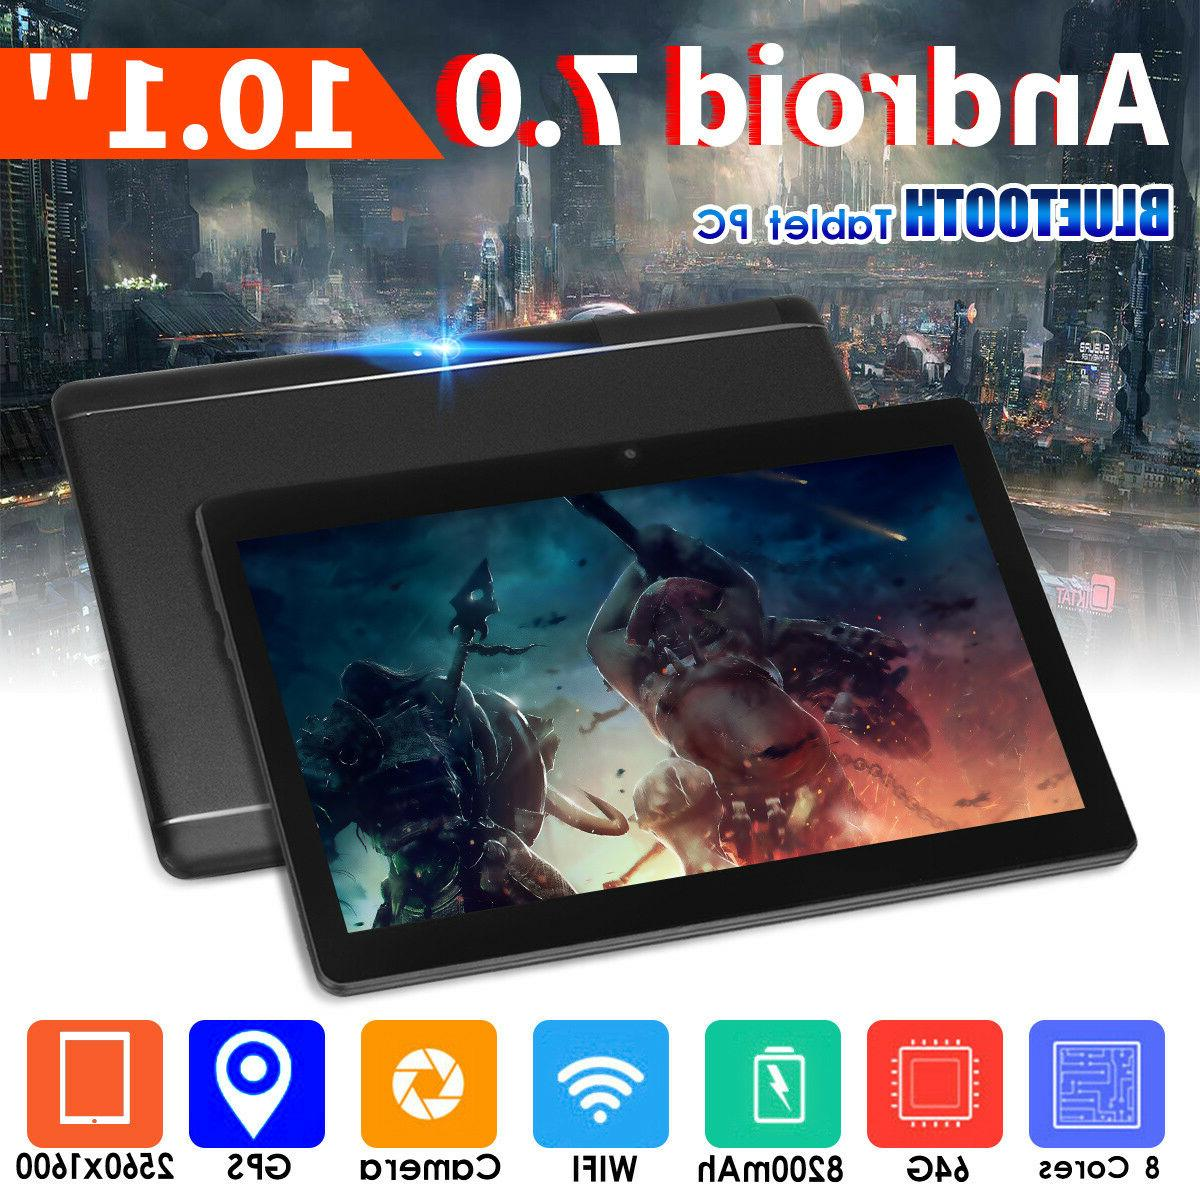 4GB RAM 64GB ROM for Android 7.0 Phablet Tablet HJ